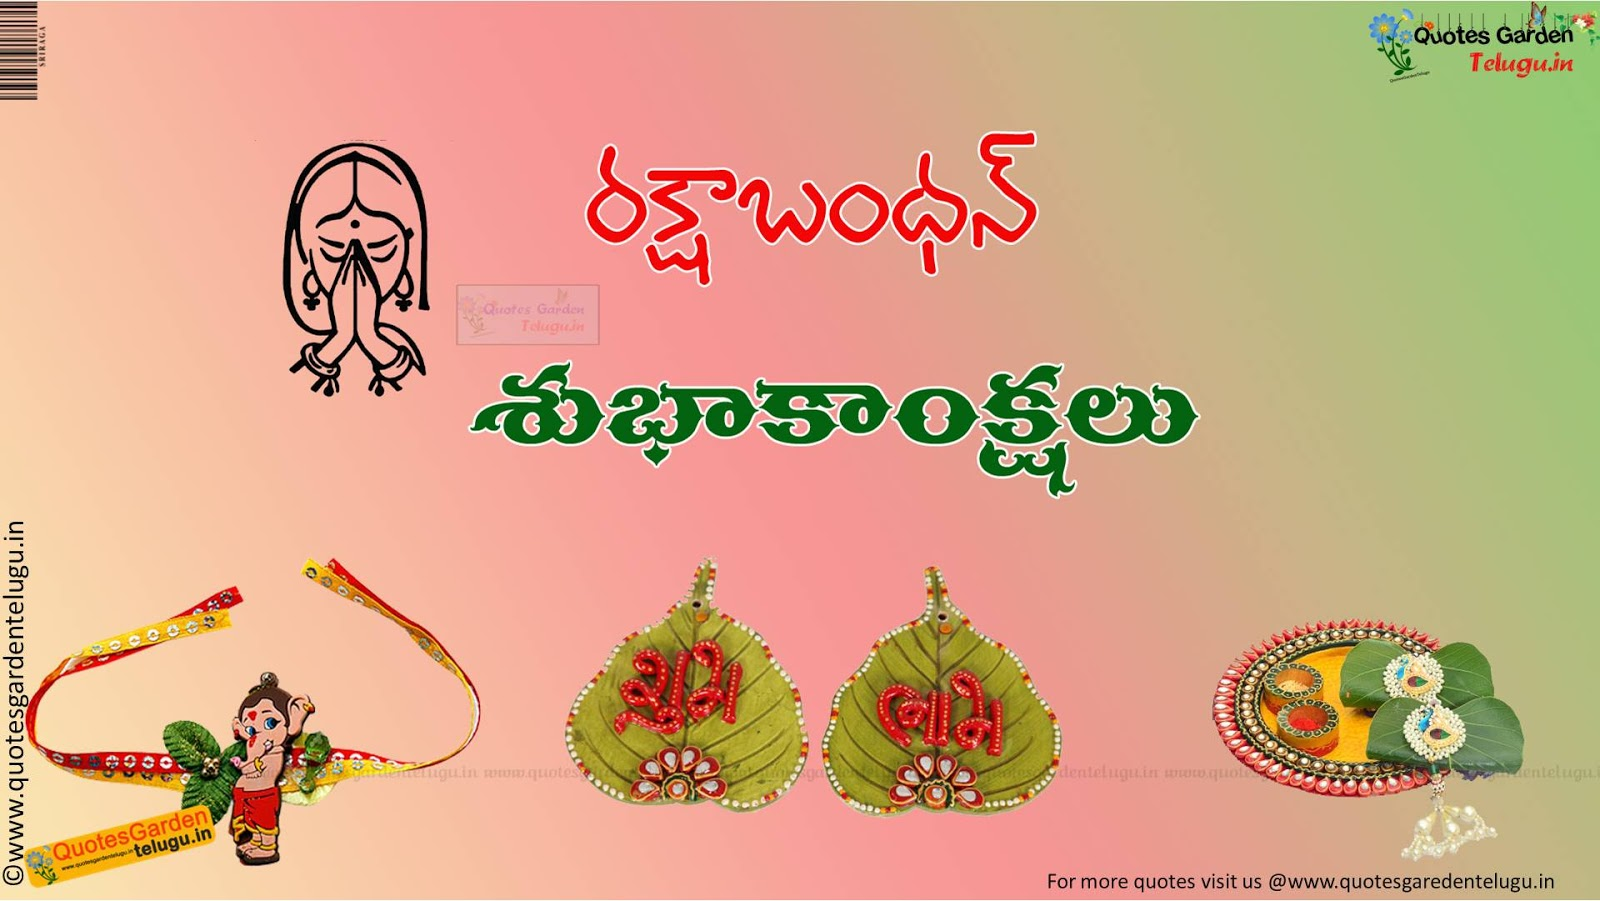 Best Whatsapp Status Sms Messages Quotes Wallpapers Rakshabandhan Telugu Quotes Wishes Greetings Wallpapers